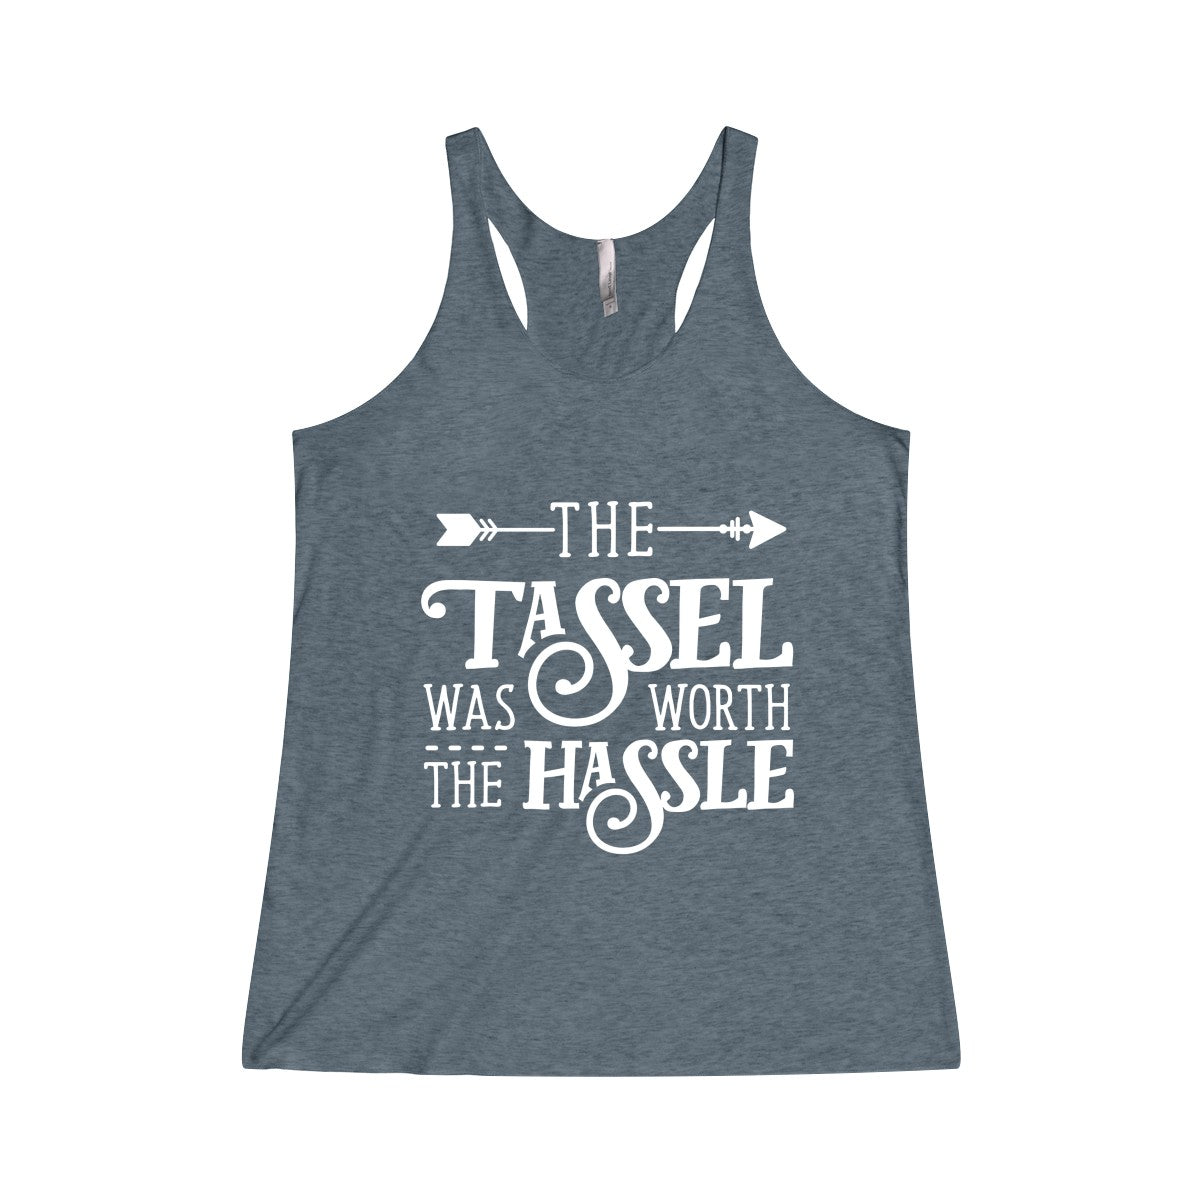 The Tassle Was Worth the Hassle Tri-Blend Racerback Tank